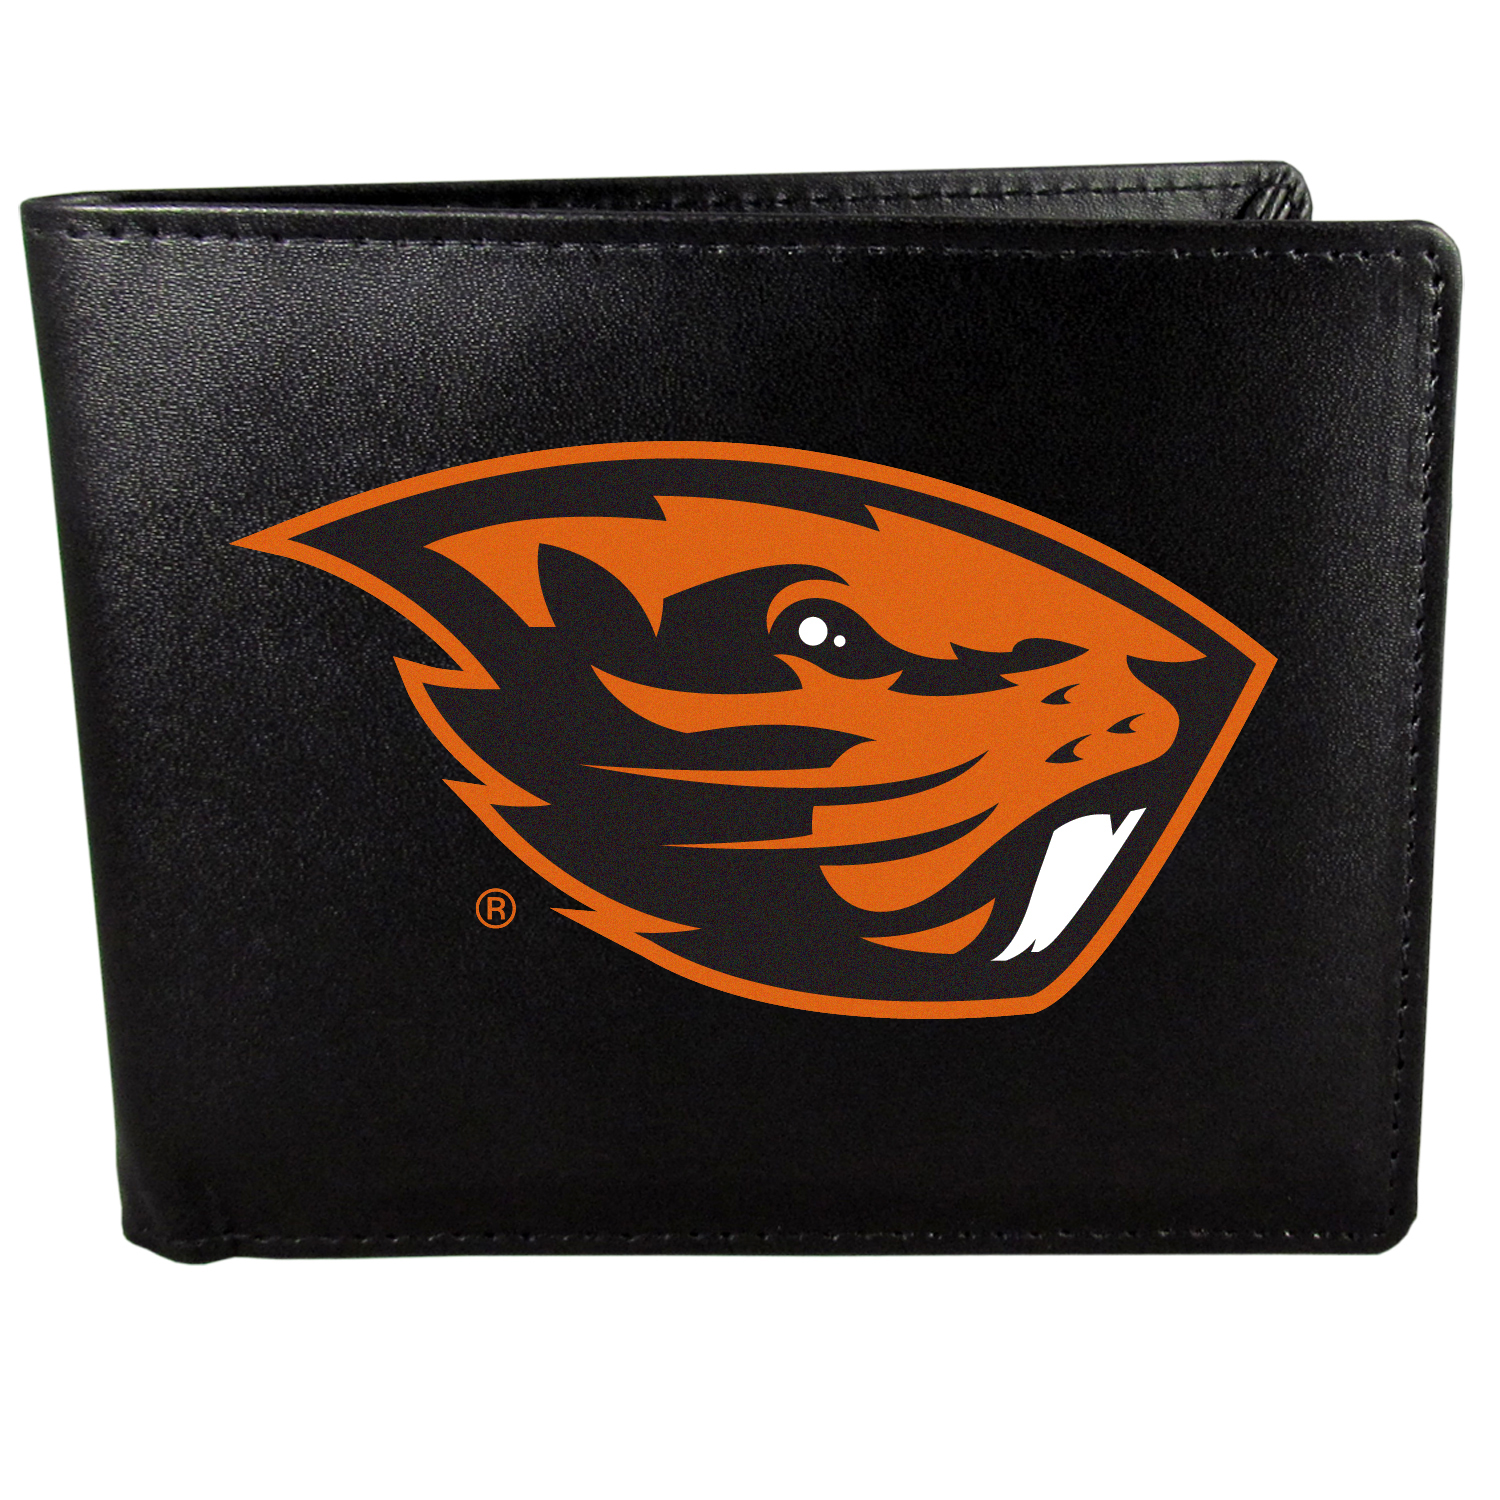 Oregon St. Beavers Bi-fold Wallet Large Logo - Sports fans do not have to sacrifice style with this classic bi-fold wallet that sports the Oregon St. Beavers extra large logo. This men's fashion accessory has a leather grain look and expert craftmanship for a quality wallet at a great price. The wallet features inner credit card slots, windowed ID slot and a large billfold pocket. The front of the wallet features a printed team logo.